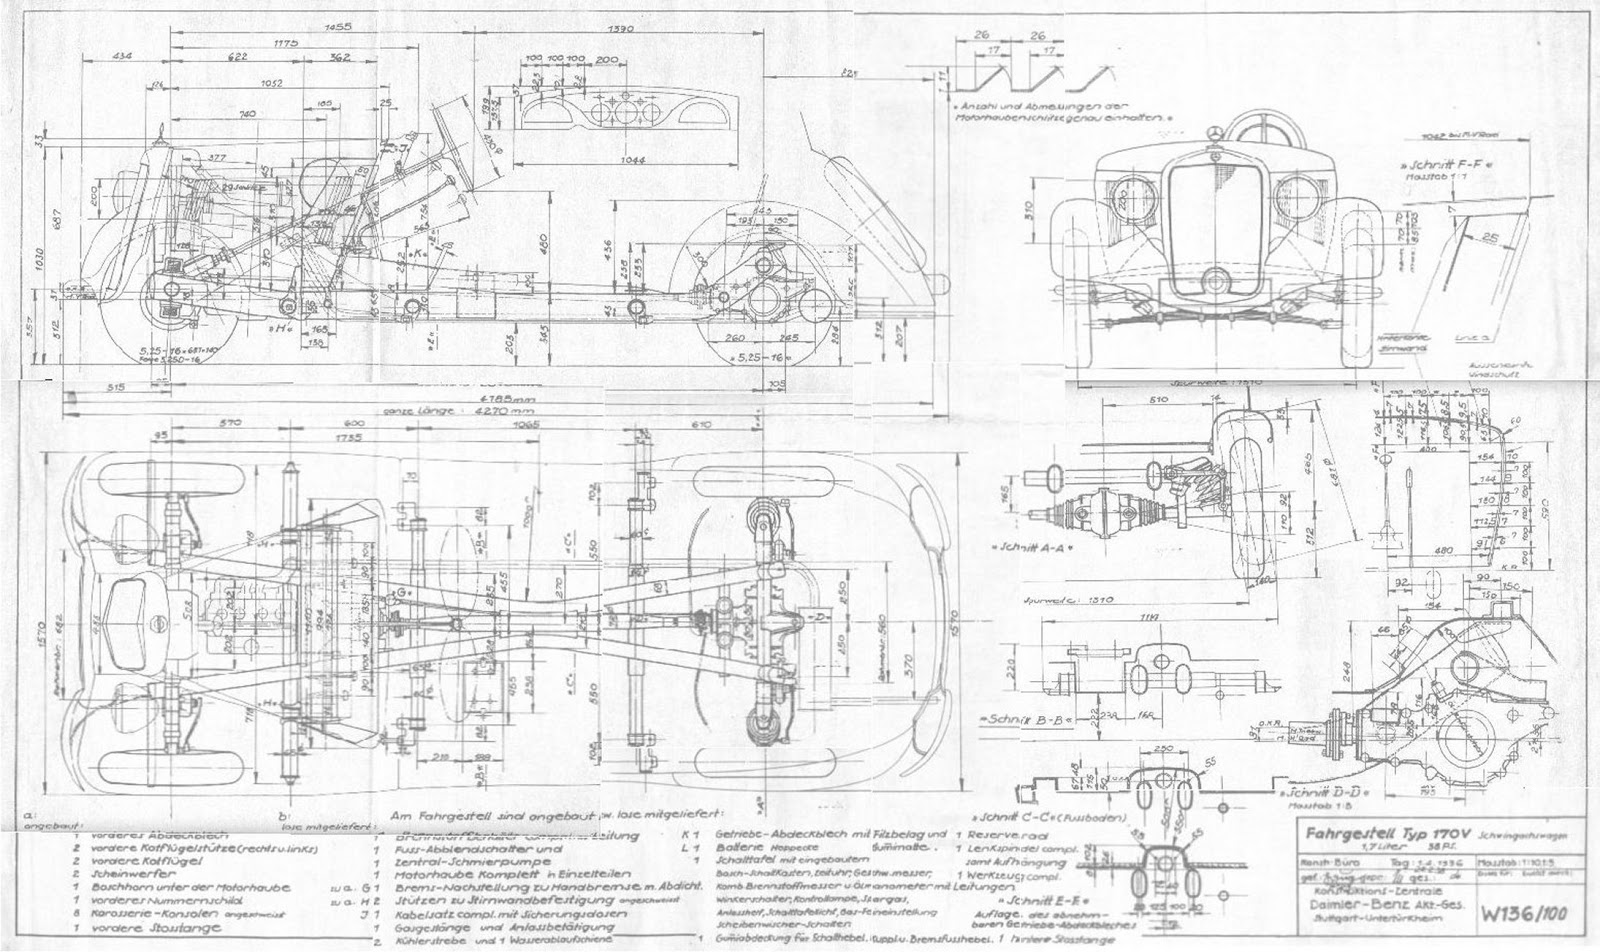 1948 Mercury Wiring Diagram Diagrams Mercruiser Trim Motor For A Willys Jeep Free Download 500 Outboard